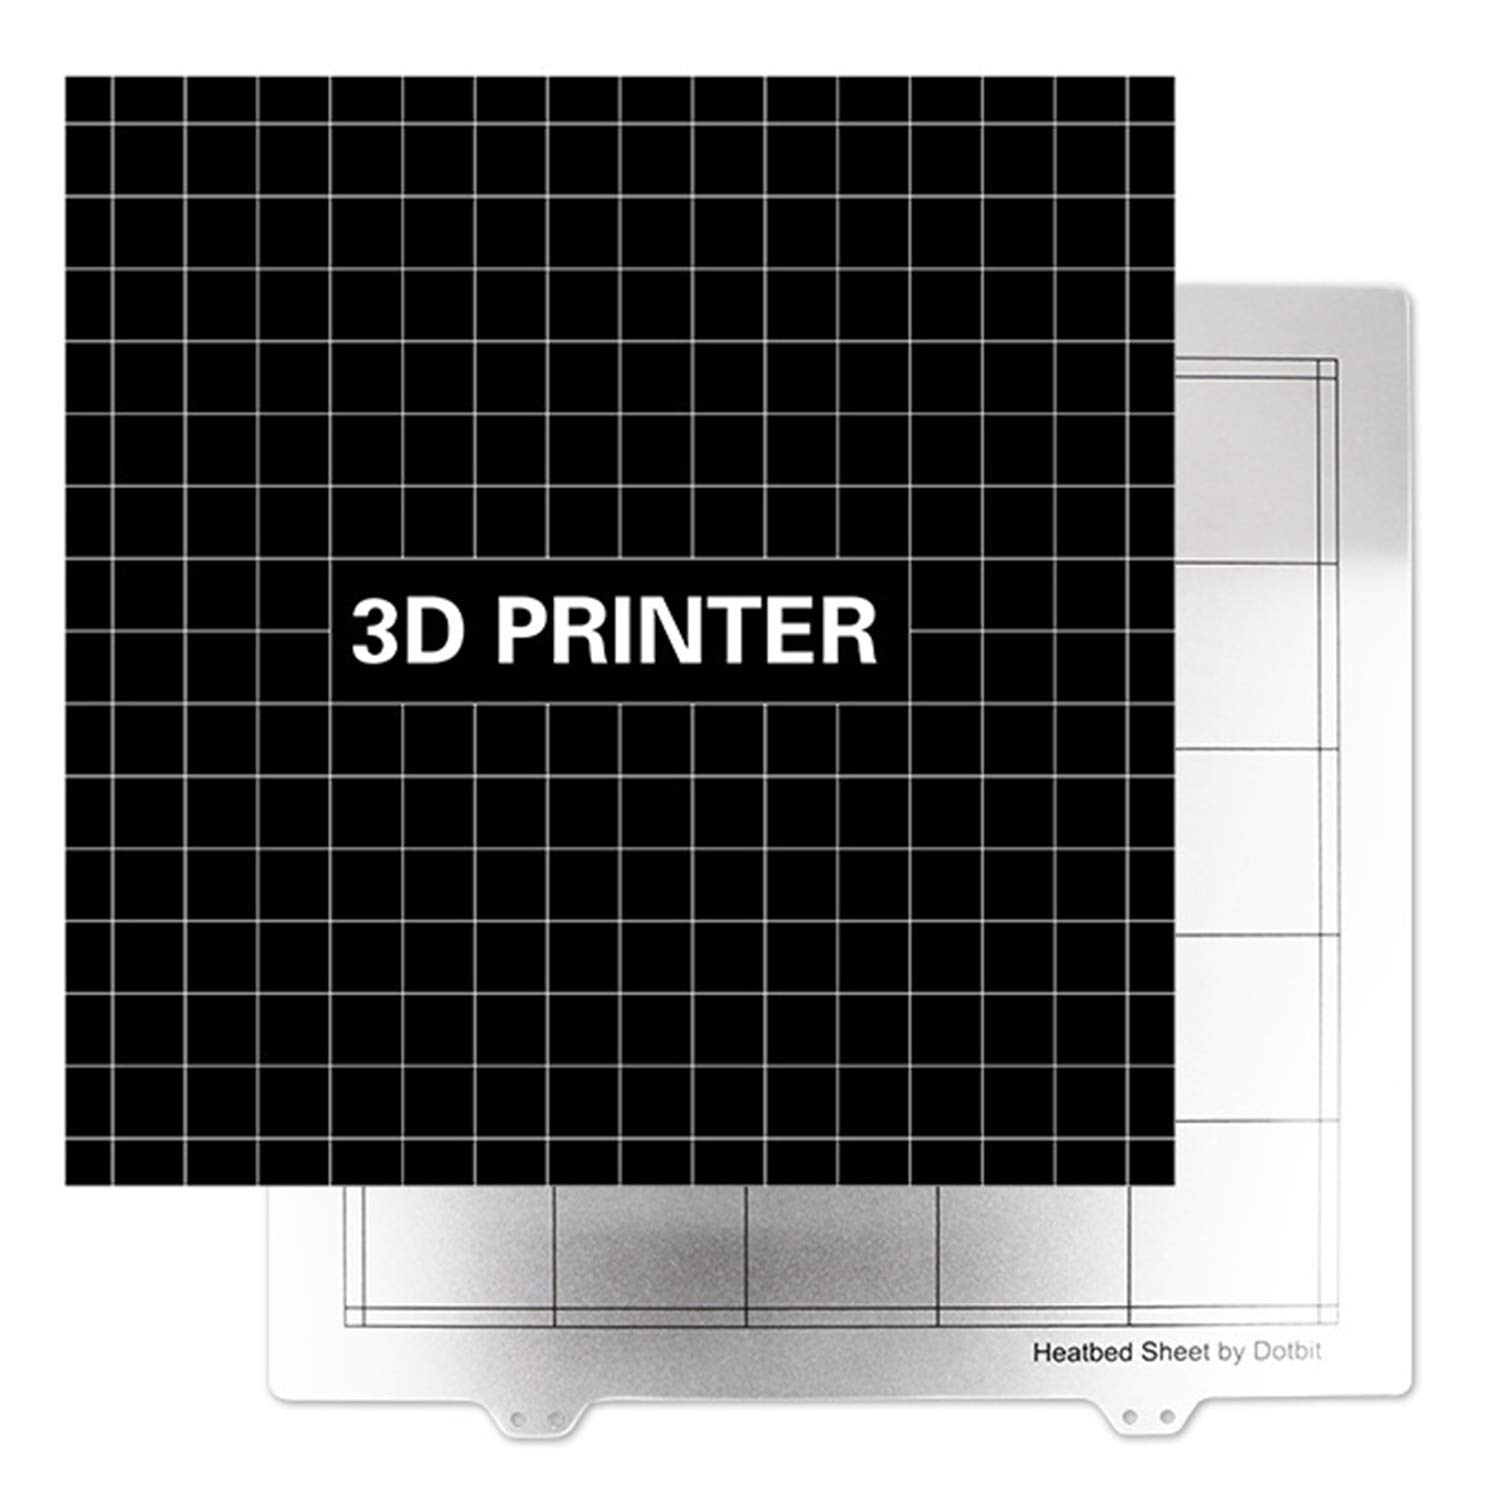 Gimax 3D Printer Accessories Choice Max 56% OFF 300X300Mm Hot Bed Steel Pla Plate +